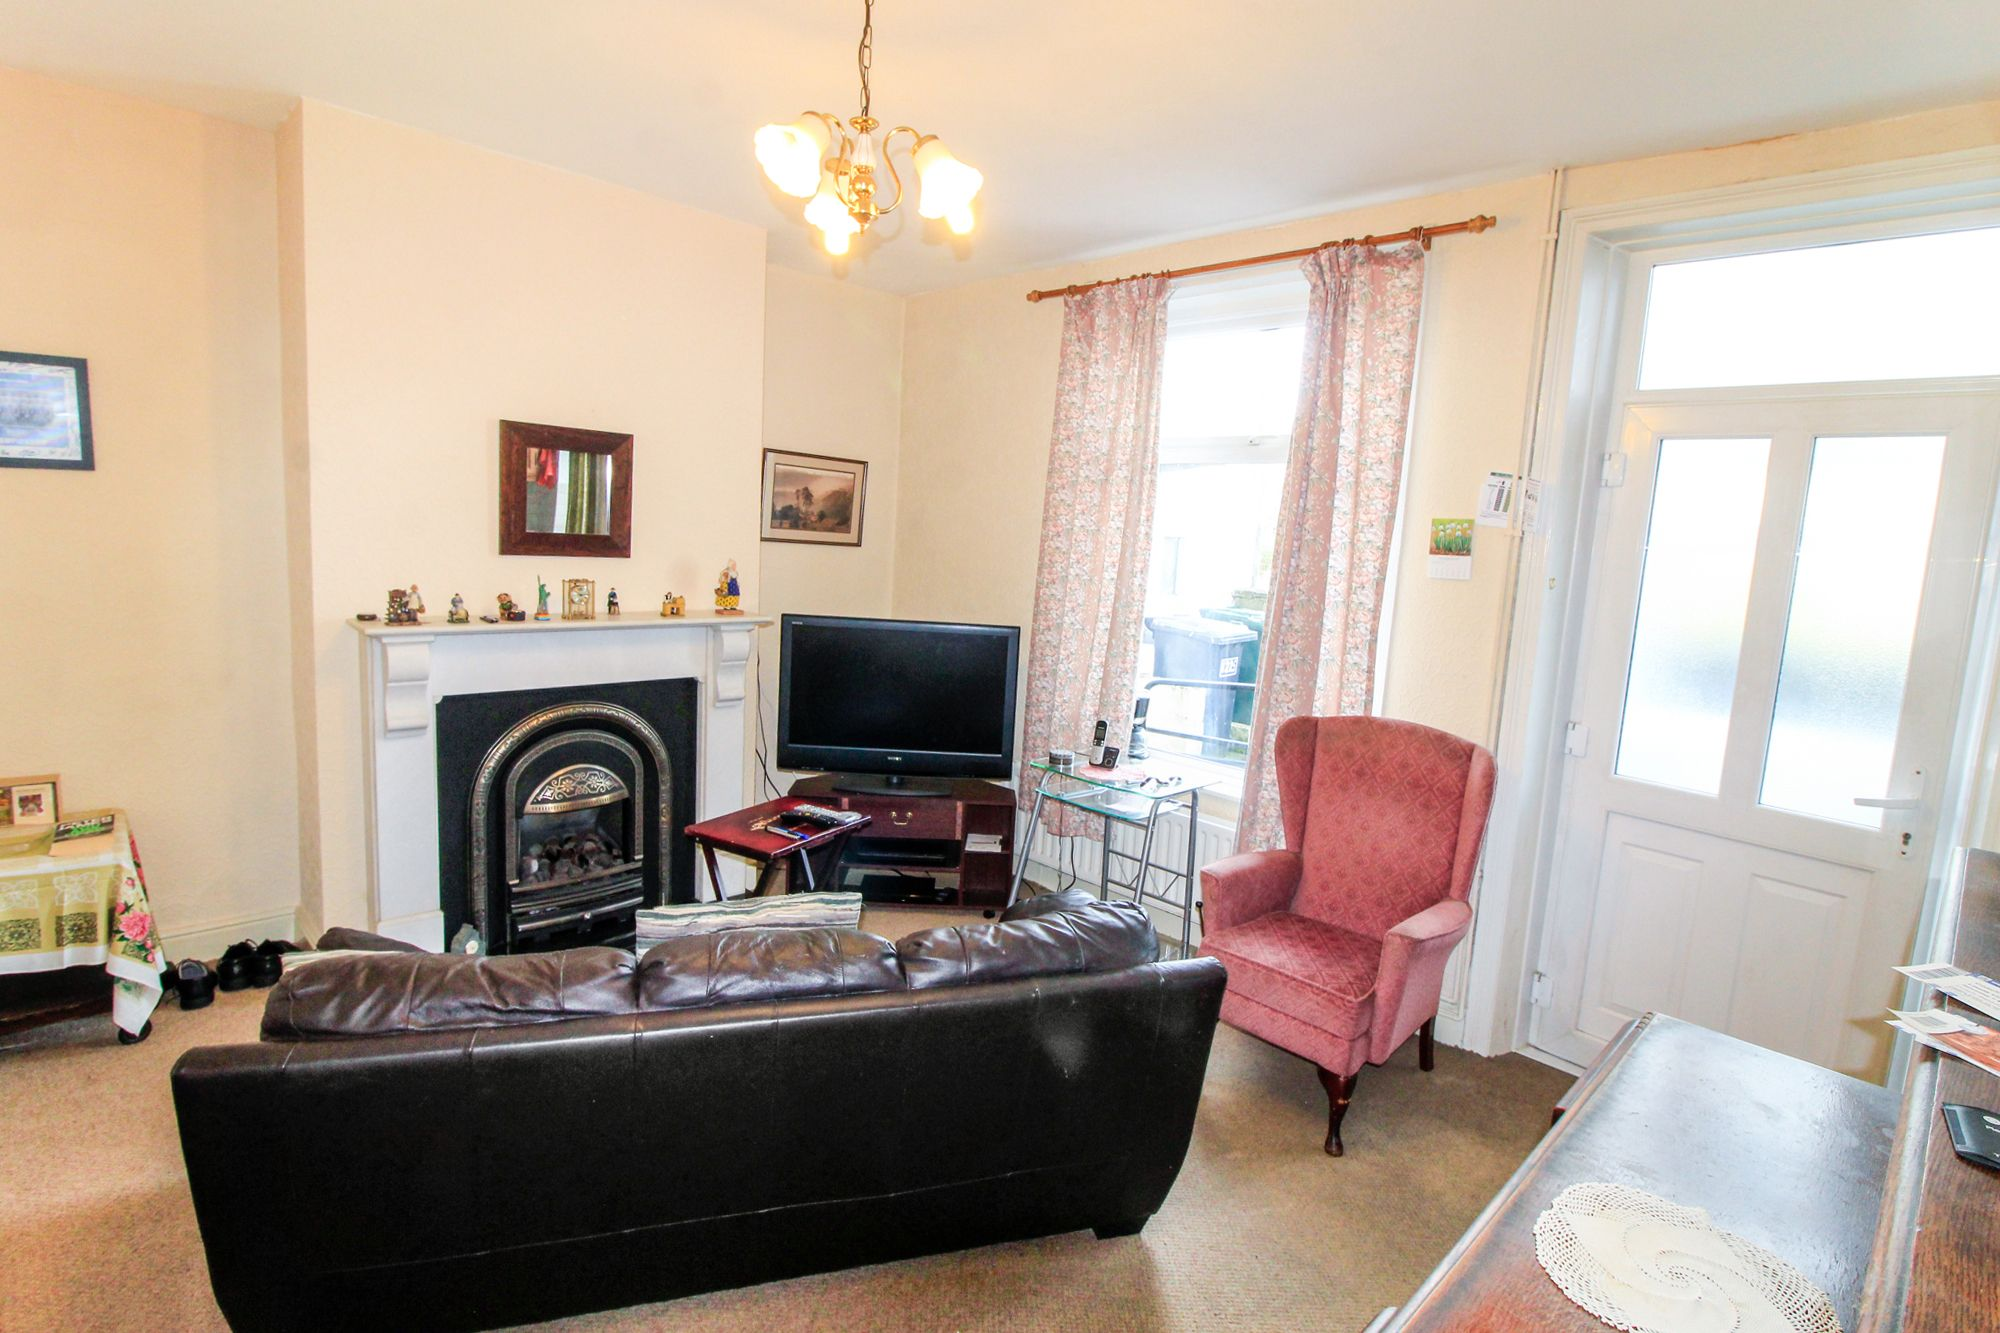 3 bedroom semi-detached house Sale Agreed in Huddersfield - Dining Room